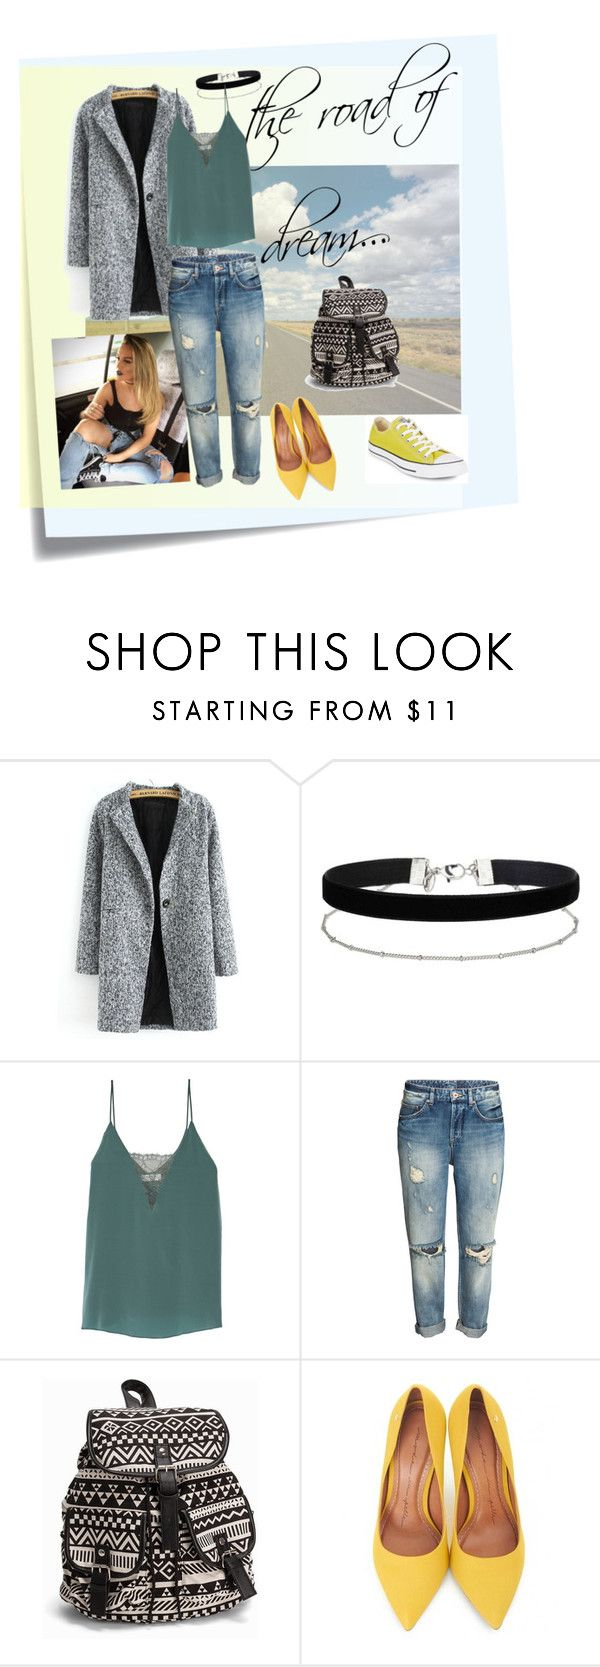 """""""dreamroad"""" by steinbachermaryna ❤ liked on Polyvore featuring Post-It, Miss Selfridge, Bailey 44, NLY Accessories, Moda In Pelle, Converse and dreamroad"""